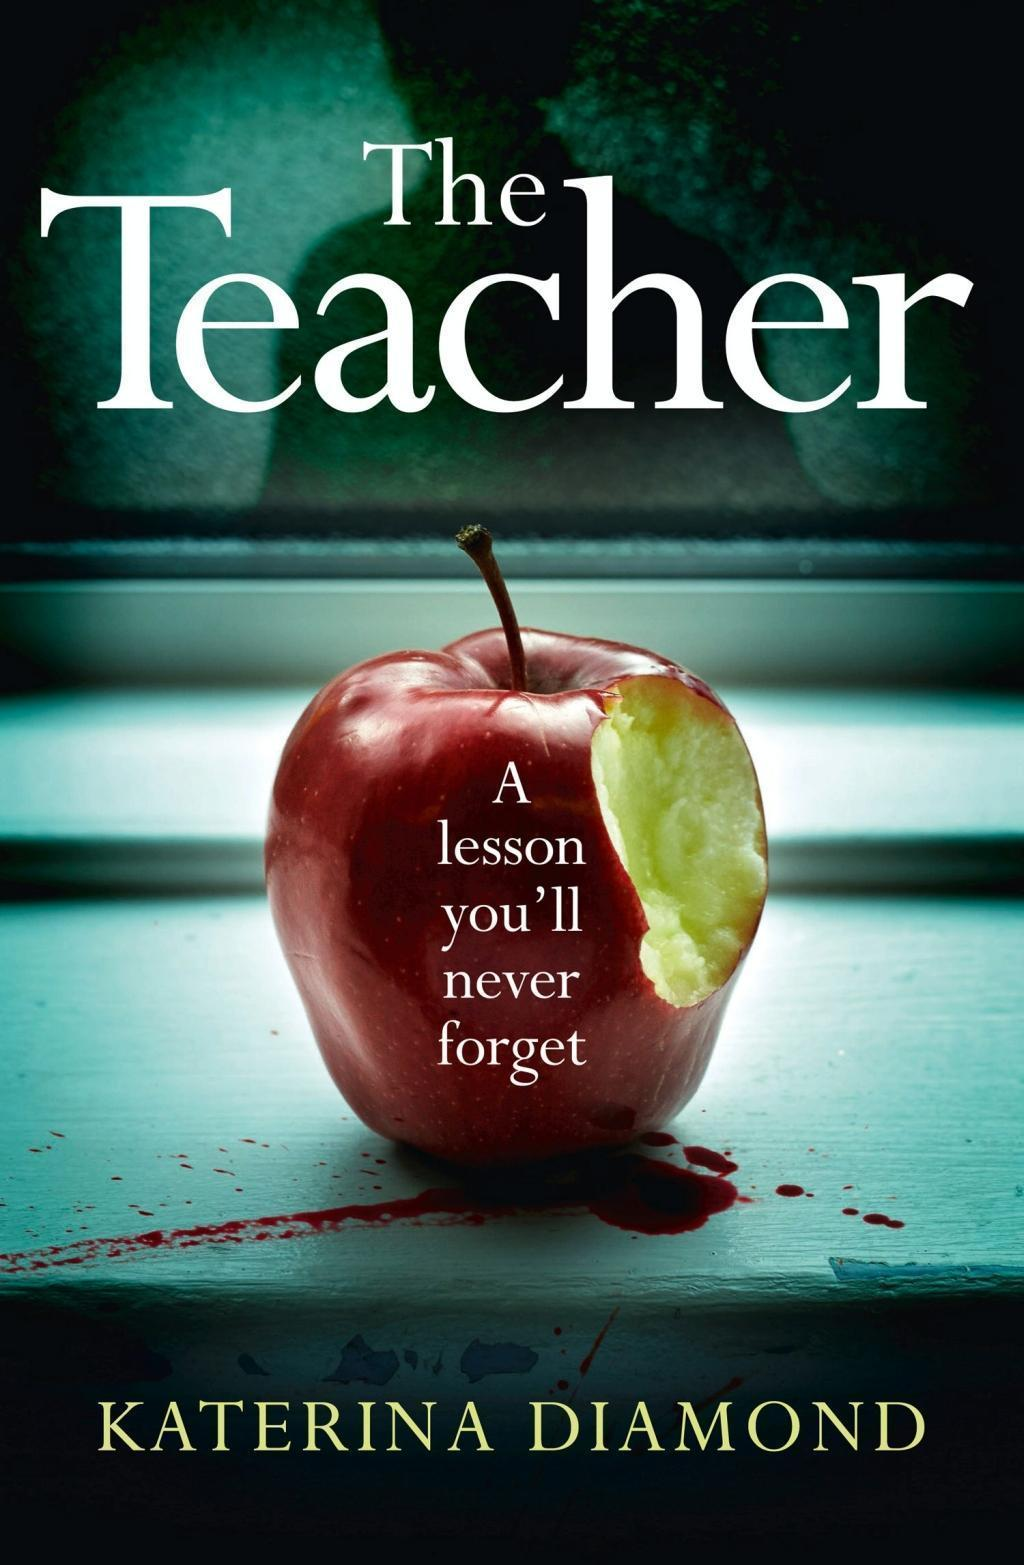 The Teacher: A shocking and compelling new crime thriller - NOT for the faint-hearted!